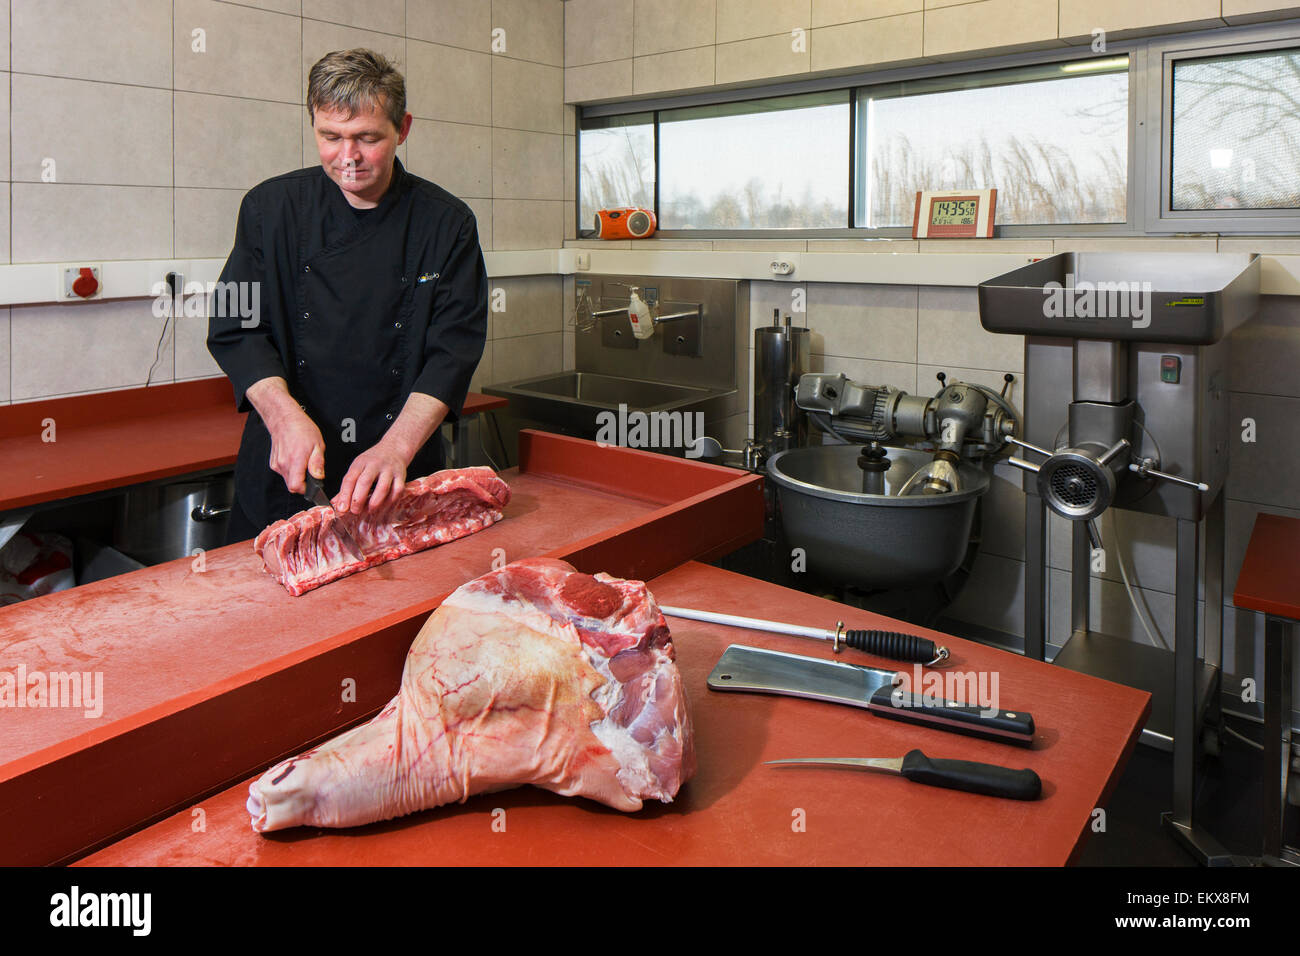 Butcher / meat cutter prepares primal cuts into a variety of smaller segments for retail - Stock Image